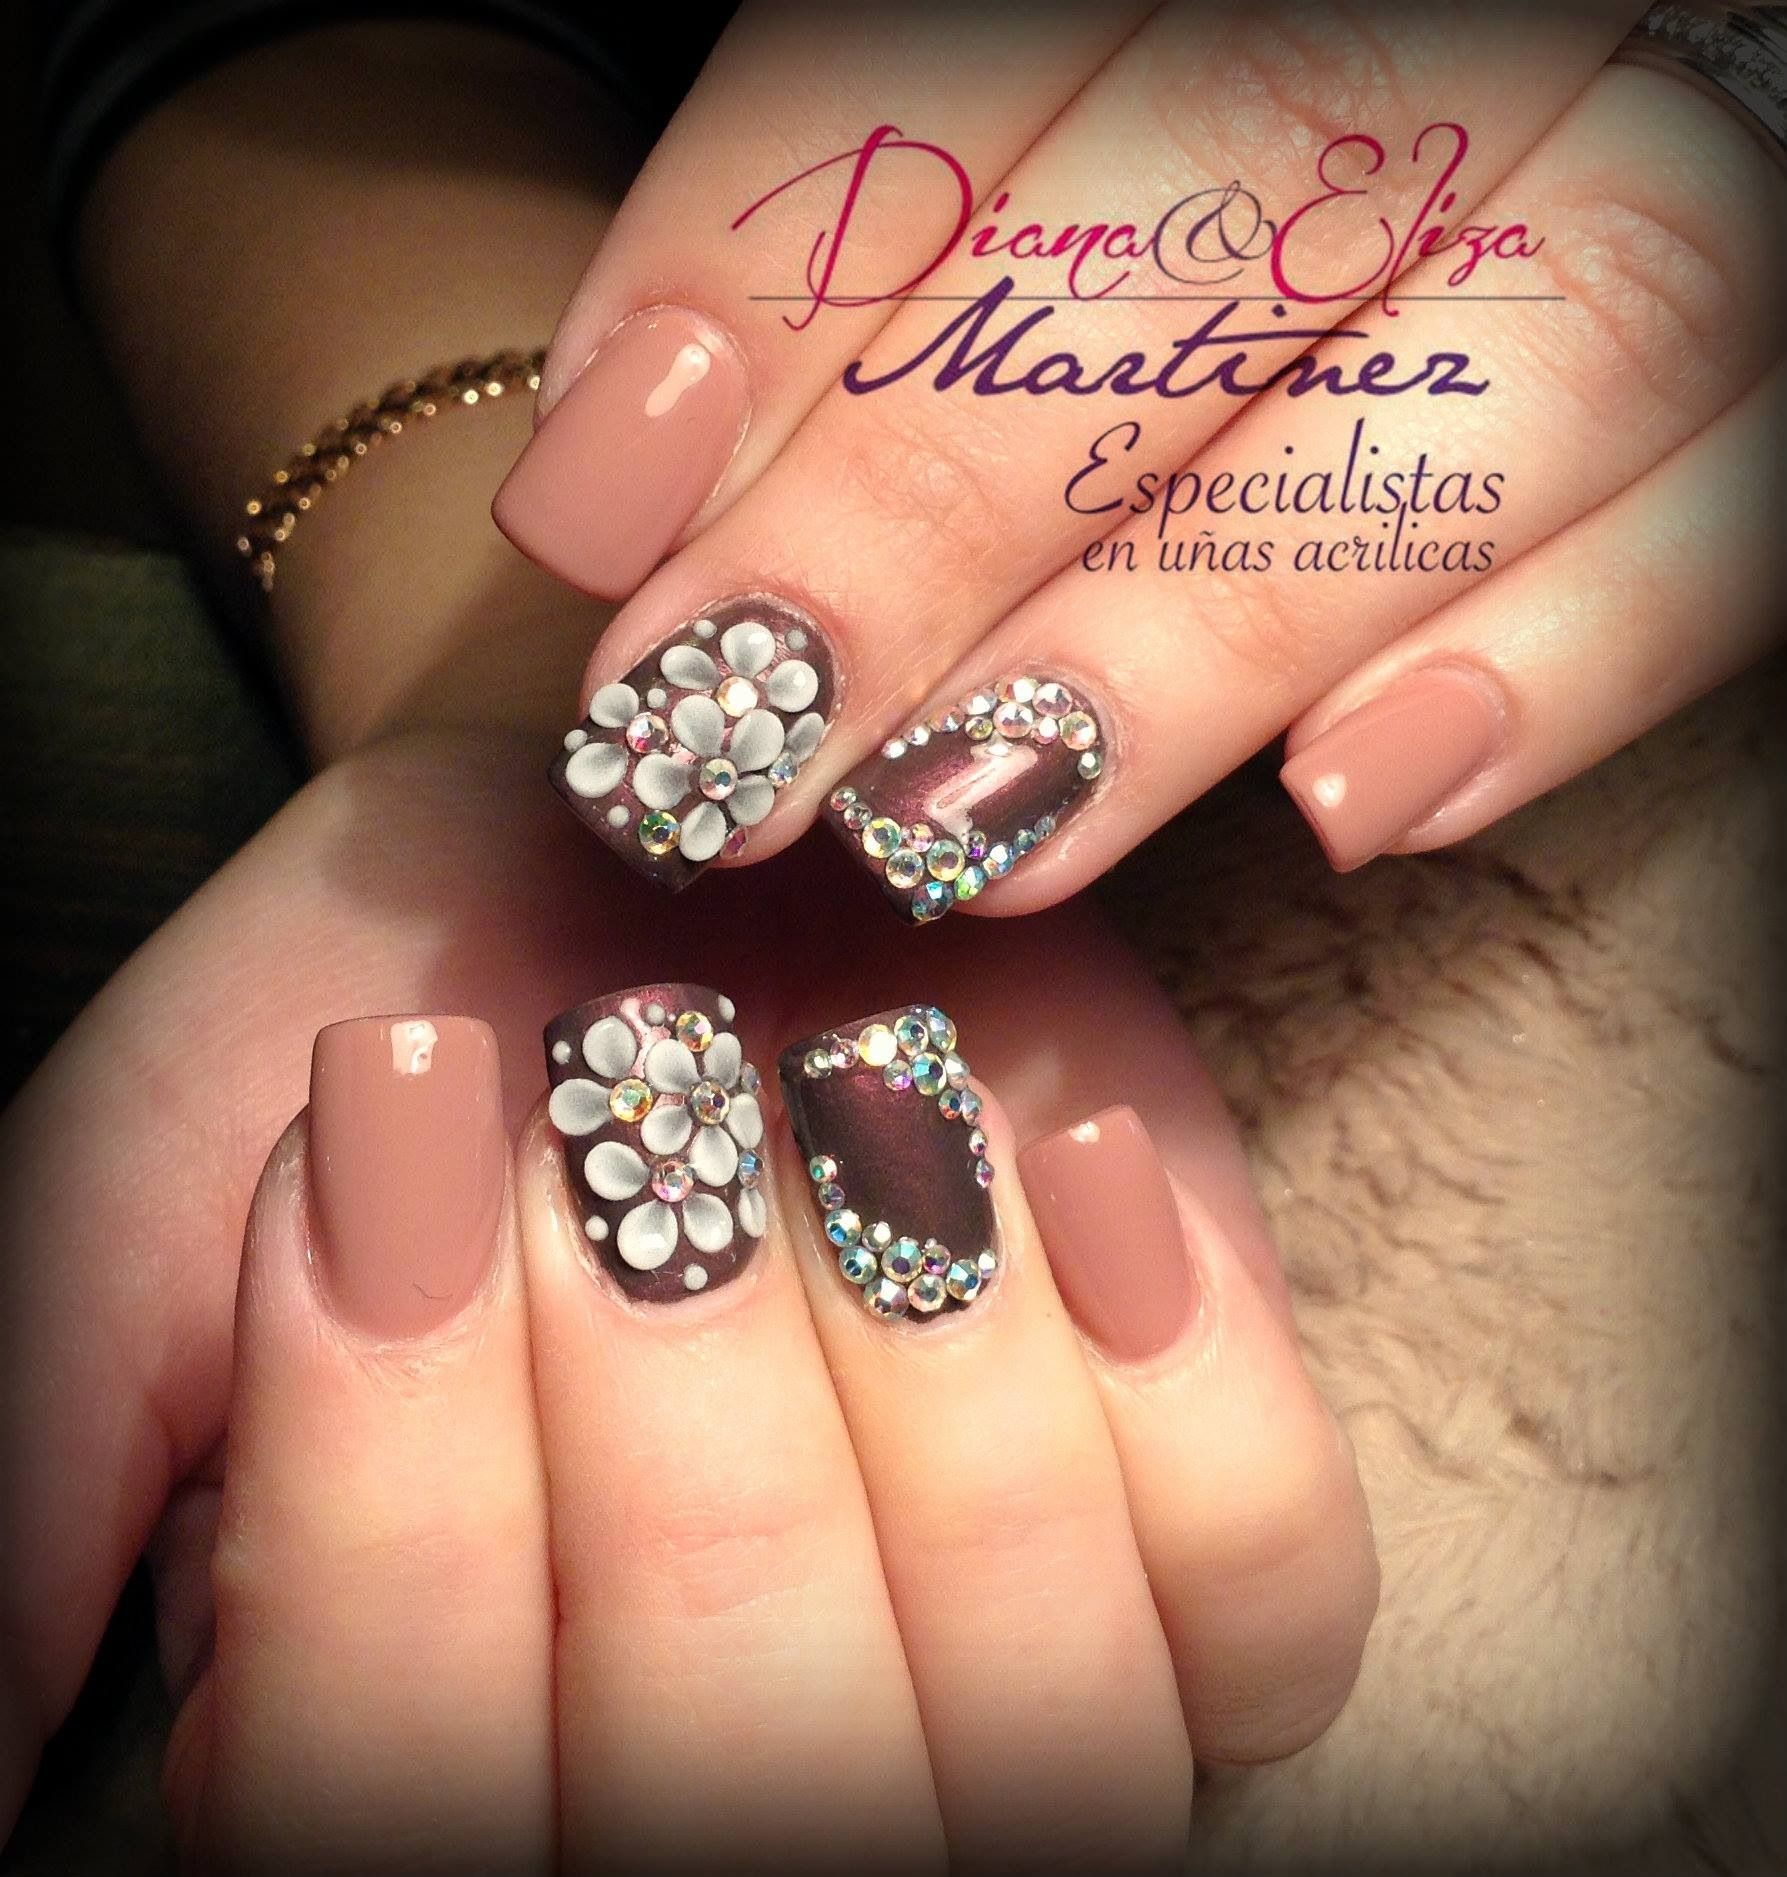 Nails 3d. Diseño hecho en Fashion Zone Monterrey 8348.9999 ...